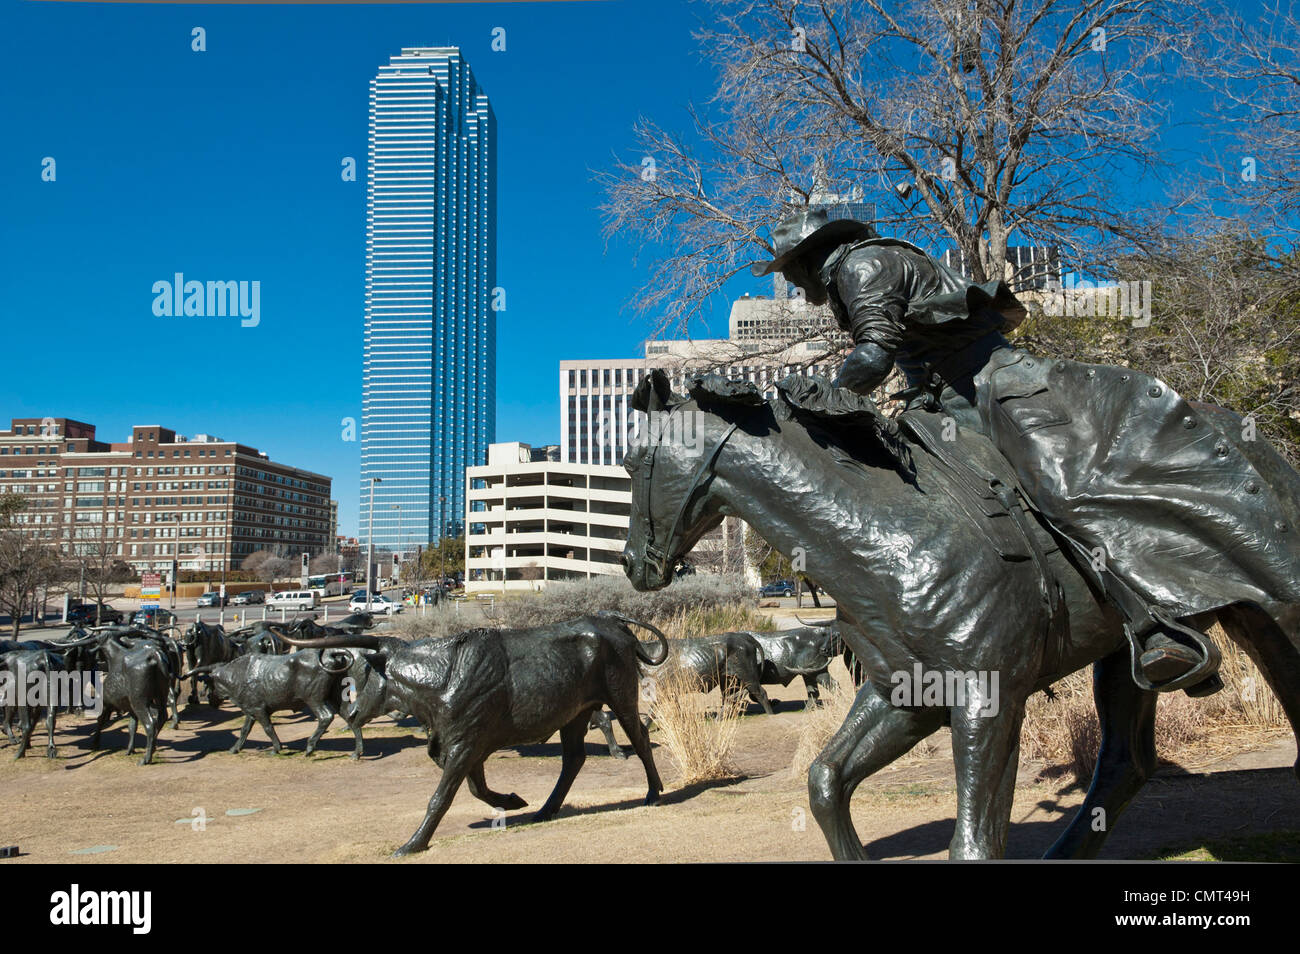 Pioneer Plaza, Dallas, Texas, USA - Cattle Drive sculpture - Stock Image